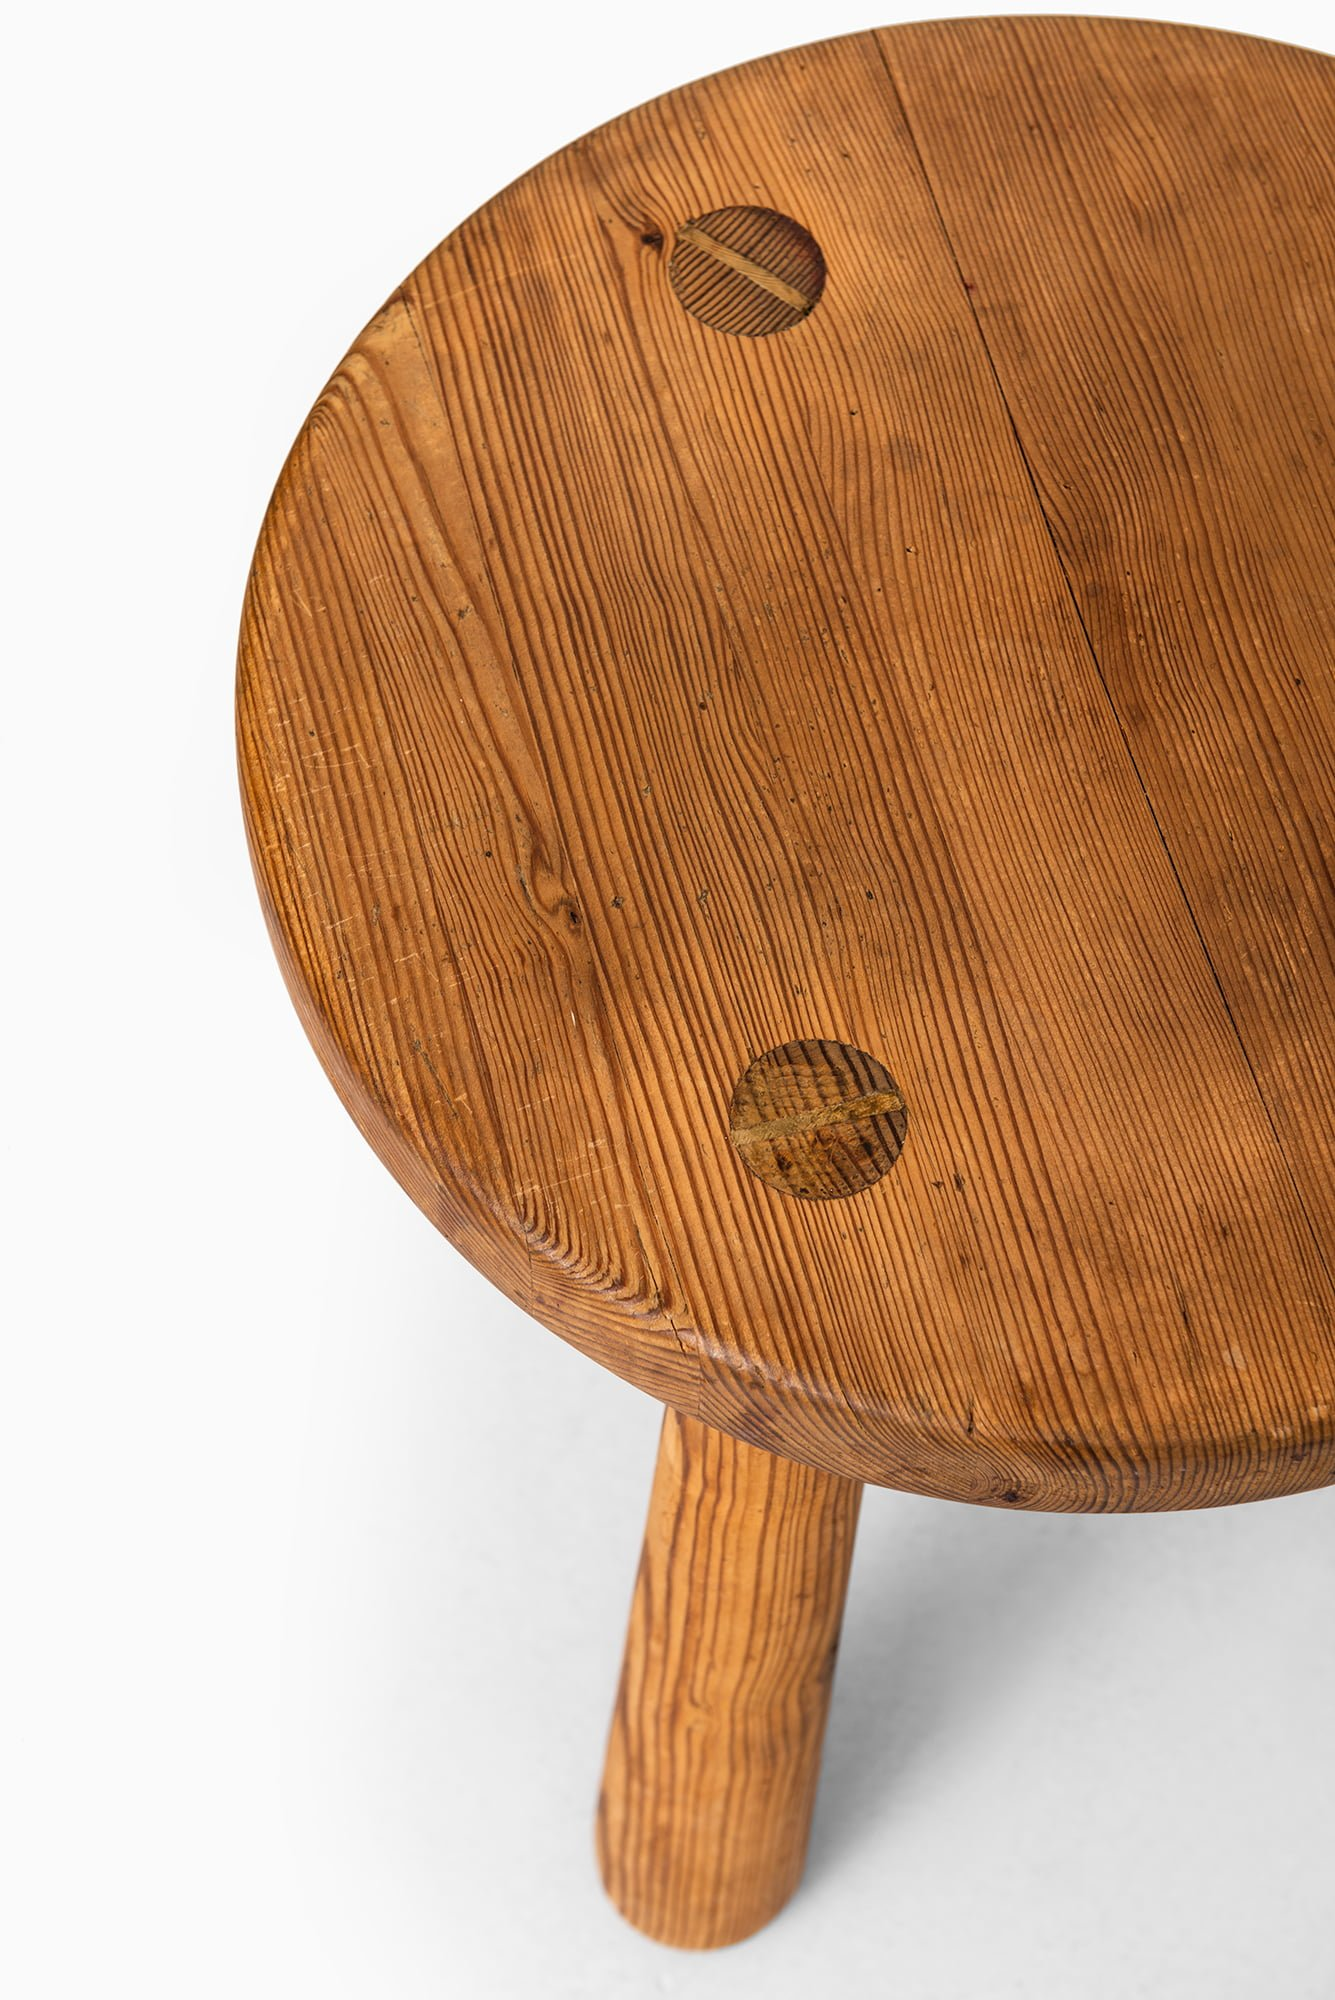 Axel Einar Hjorth Stool Model Ut 246 In Pine At Studio Schalling